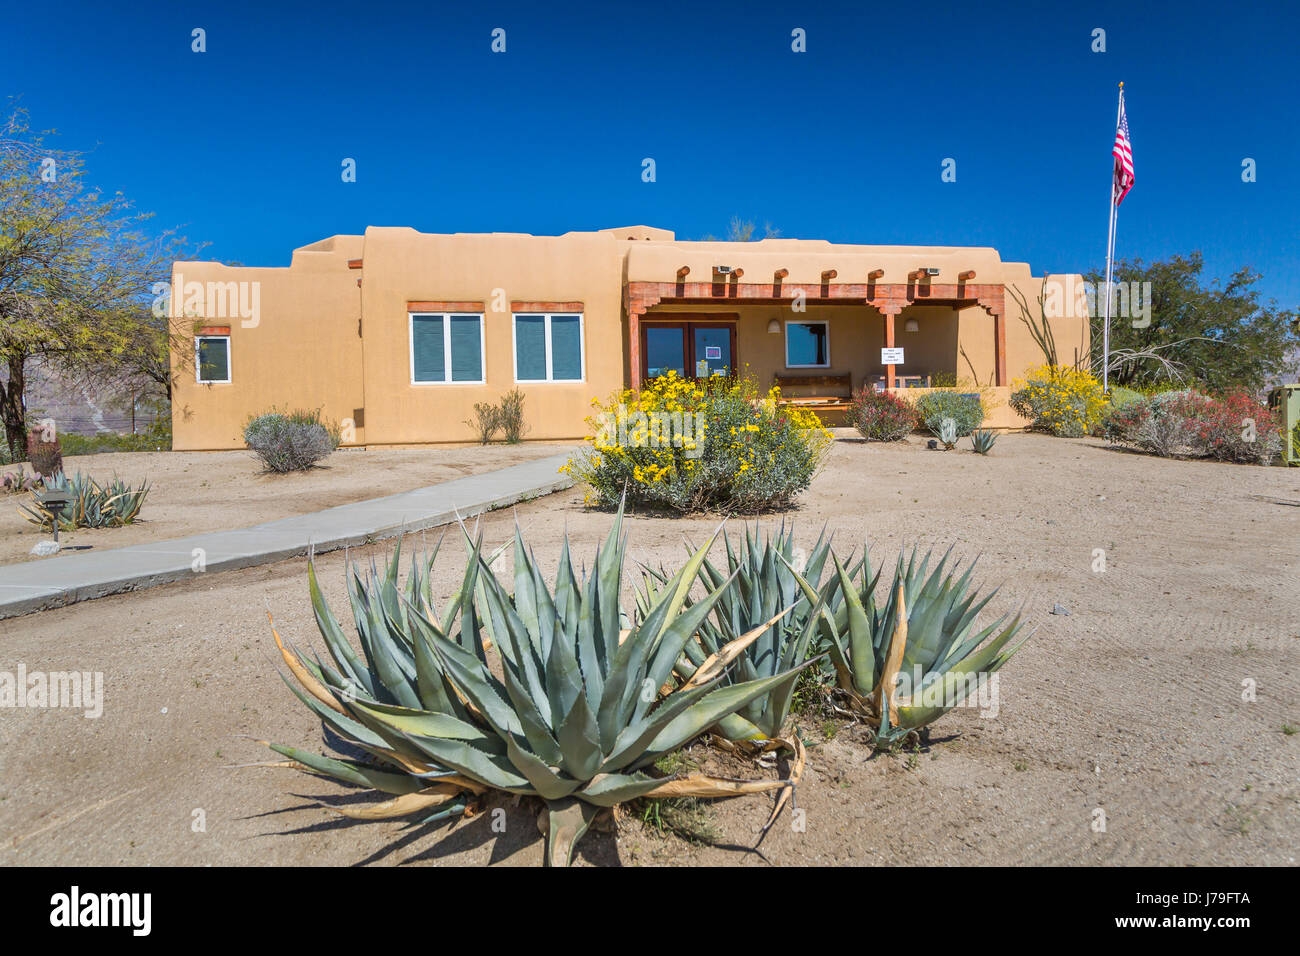 The Borrego Springs Chamber of Commerce building in Borrego Springs, California, USA. - Stock Image